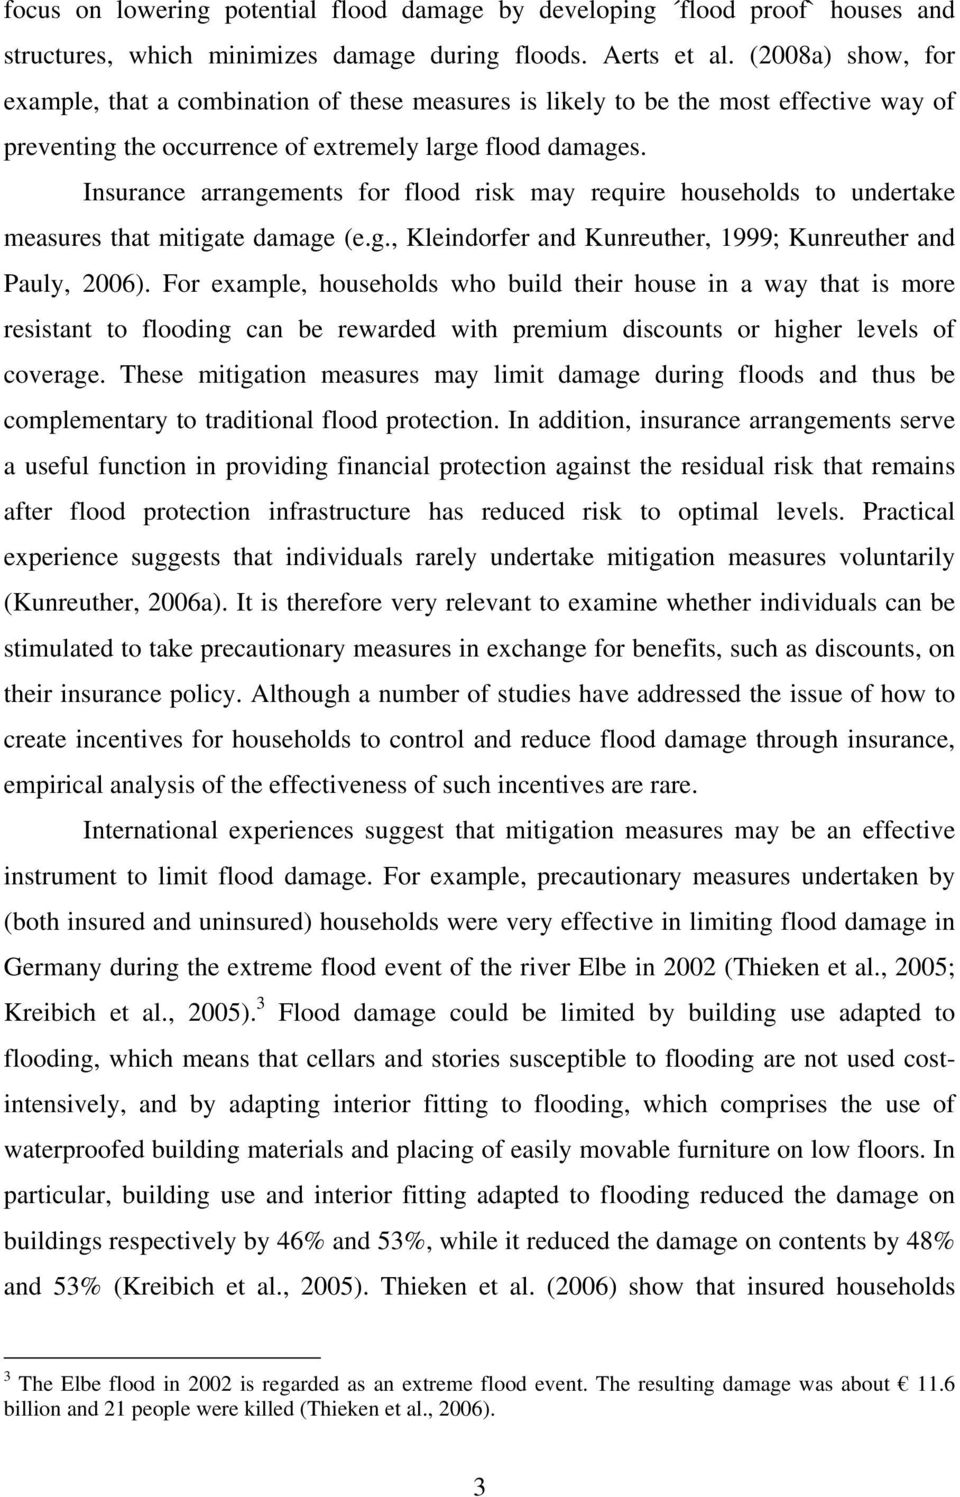 Insurance arrangements for flood risk may require households to undertake measures that mitigate damage (e.g., Kleindorfer and Kunreuther, 1999; Kunreuther and Pauly, 2006).